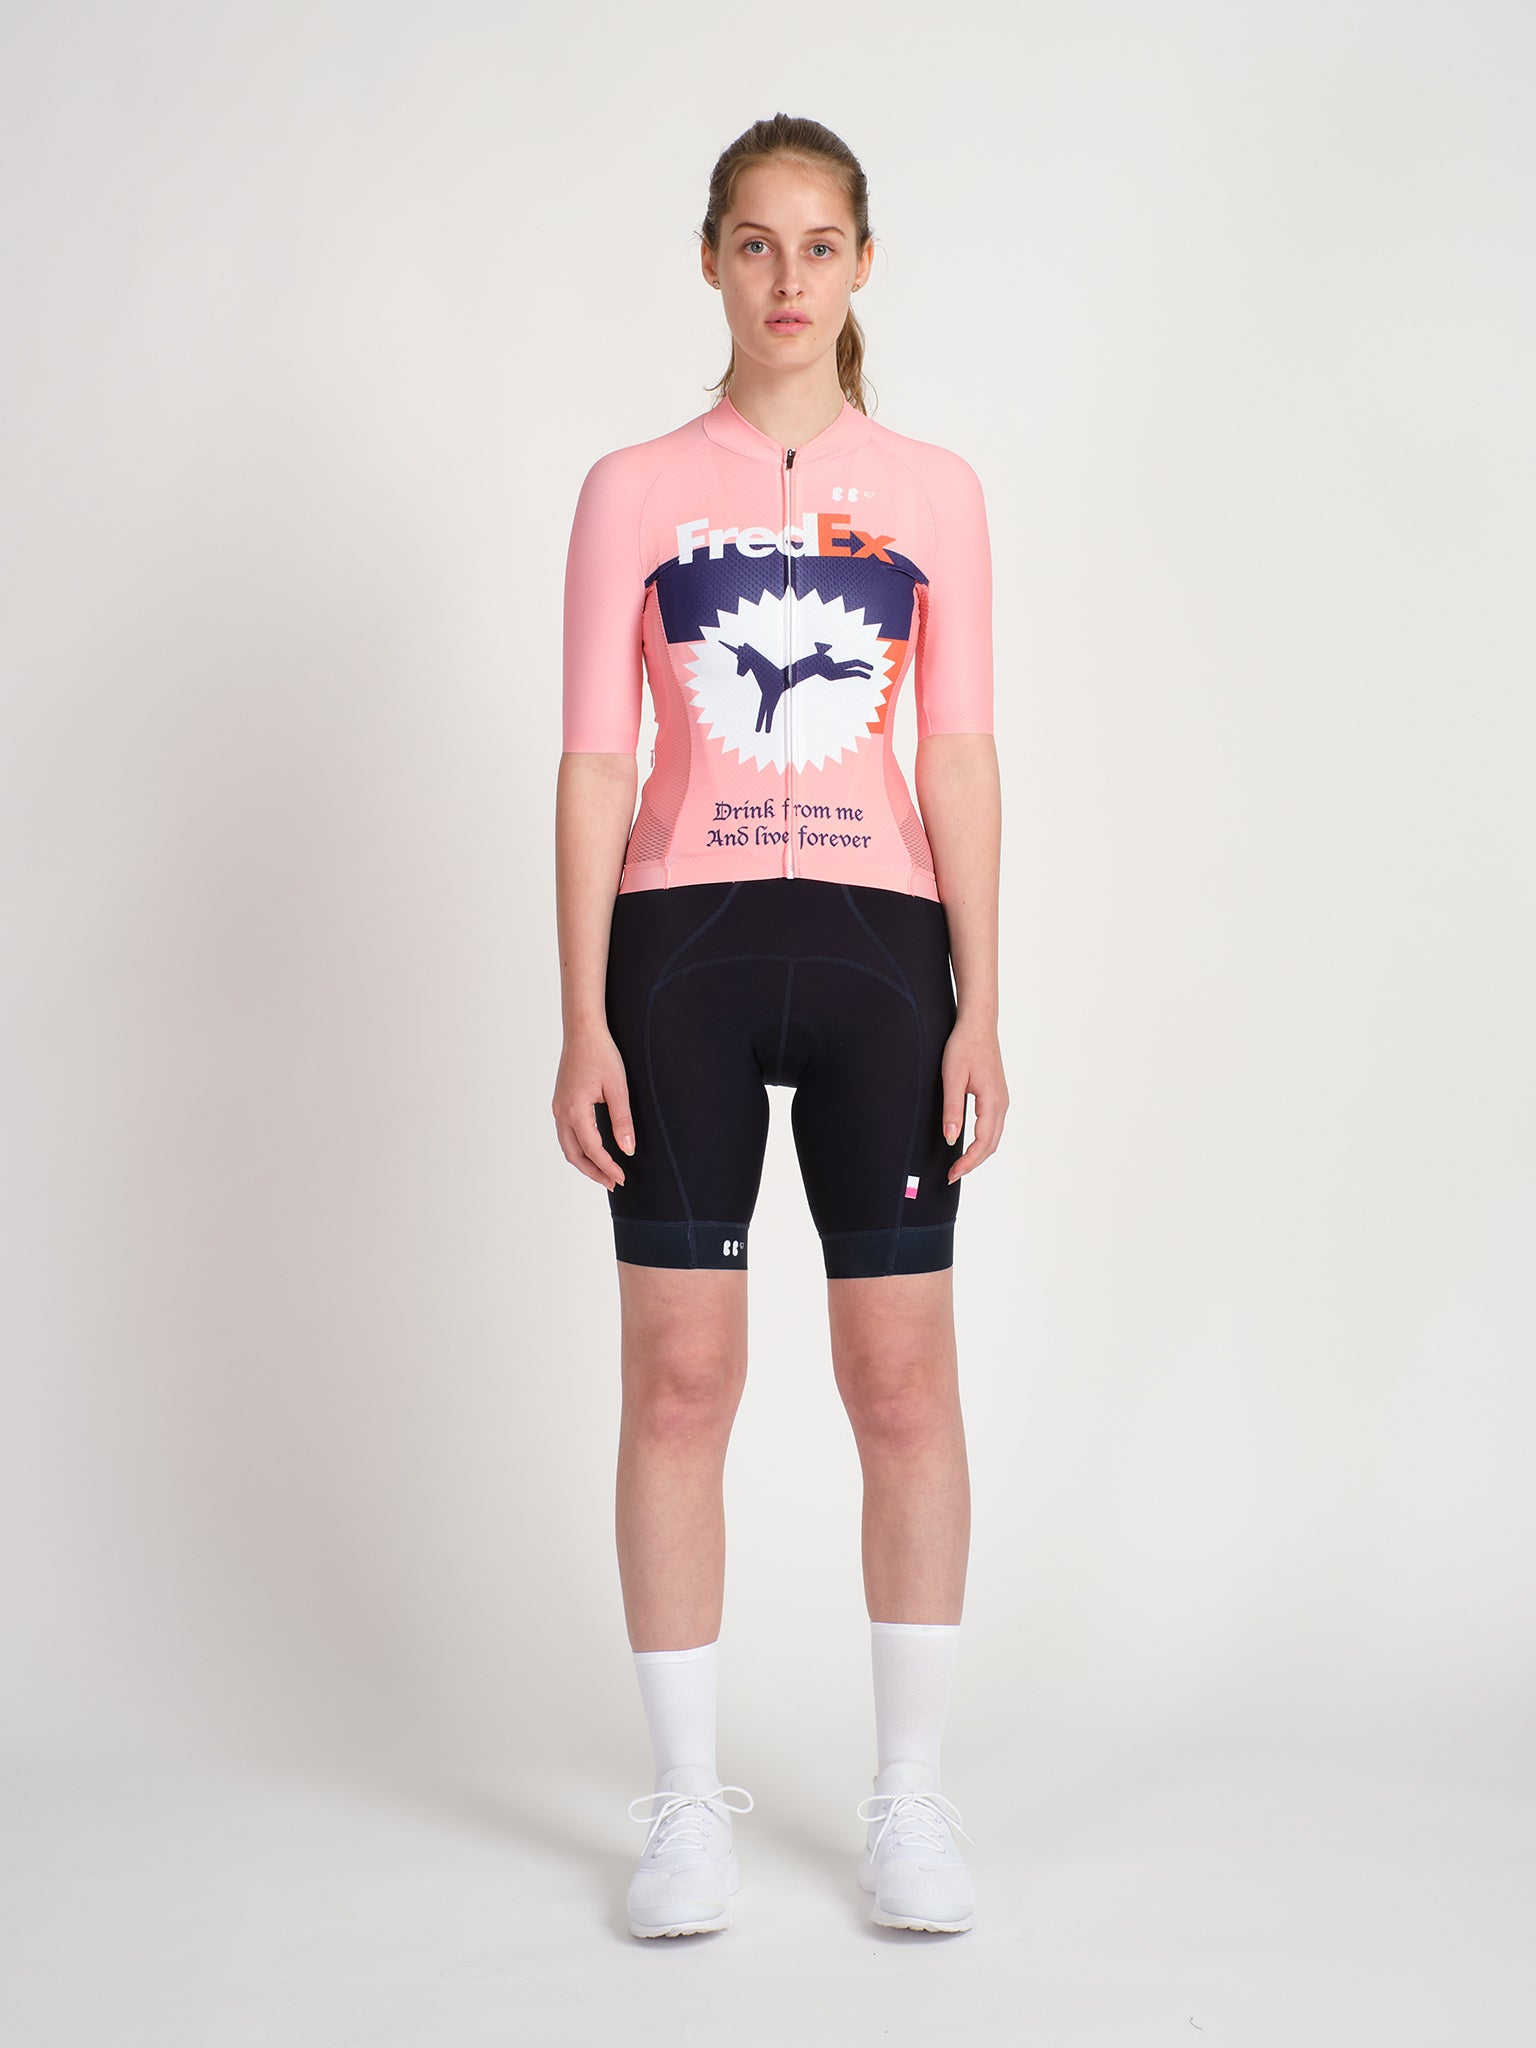 Fredex Jersey Rose Women